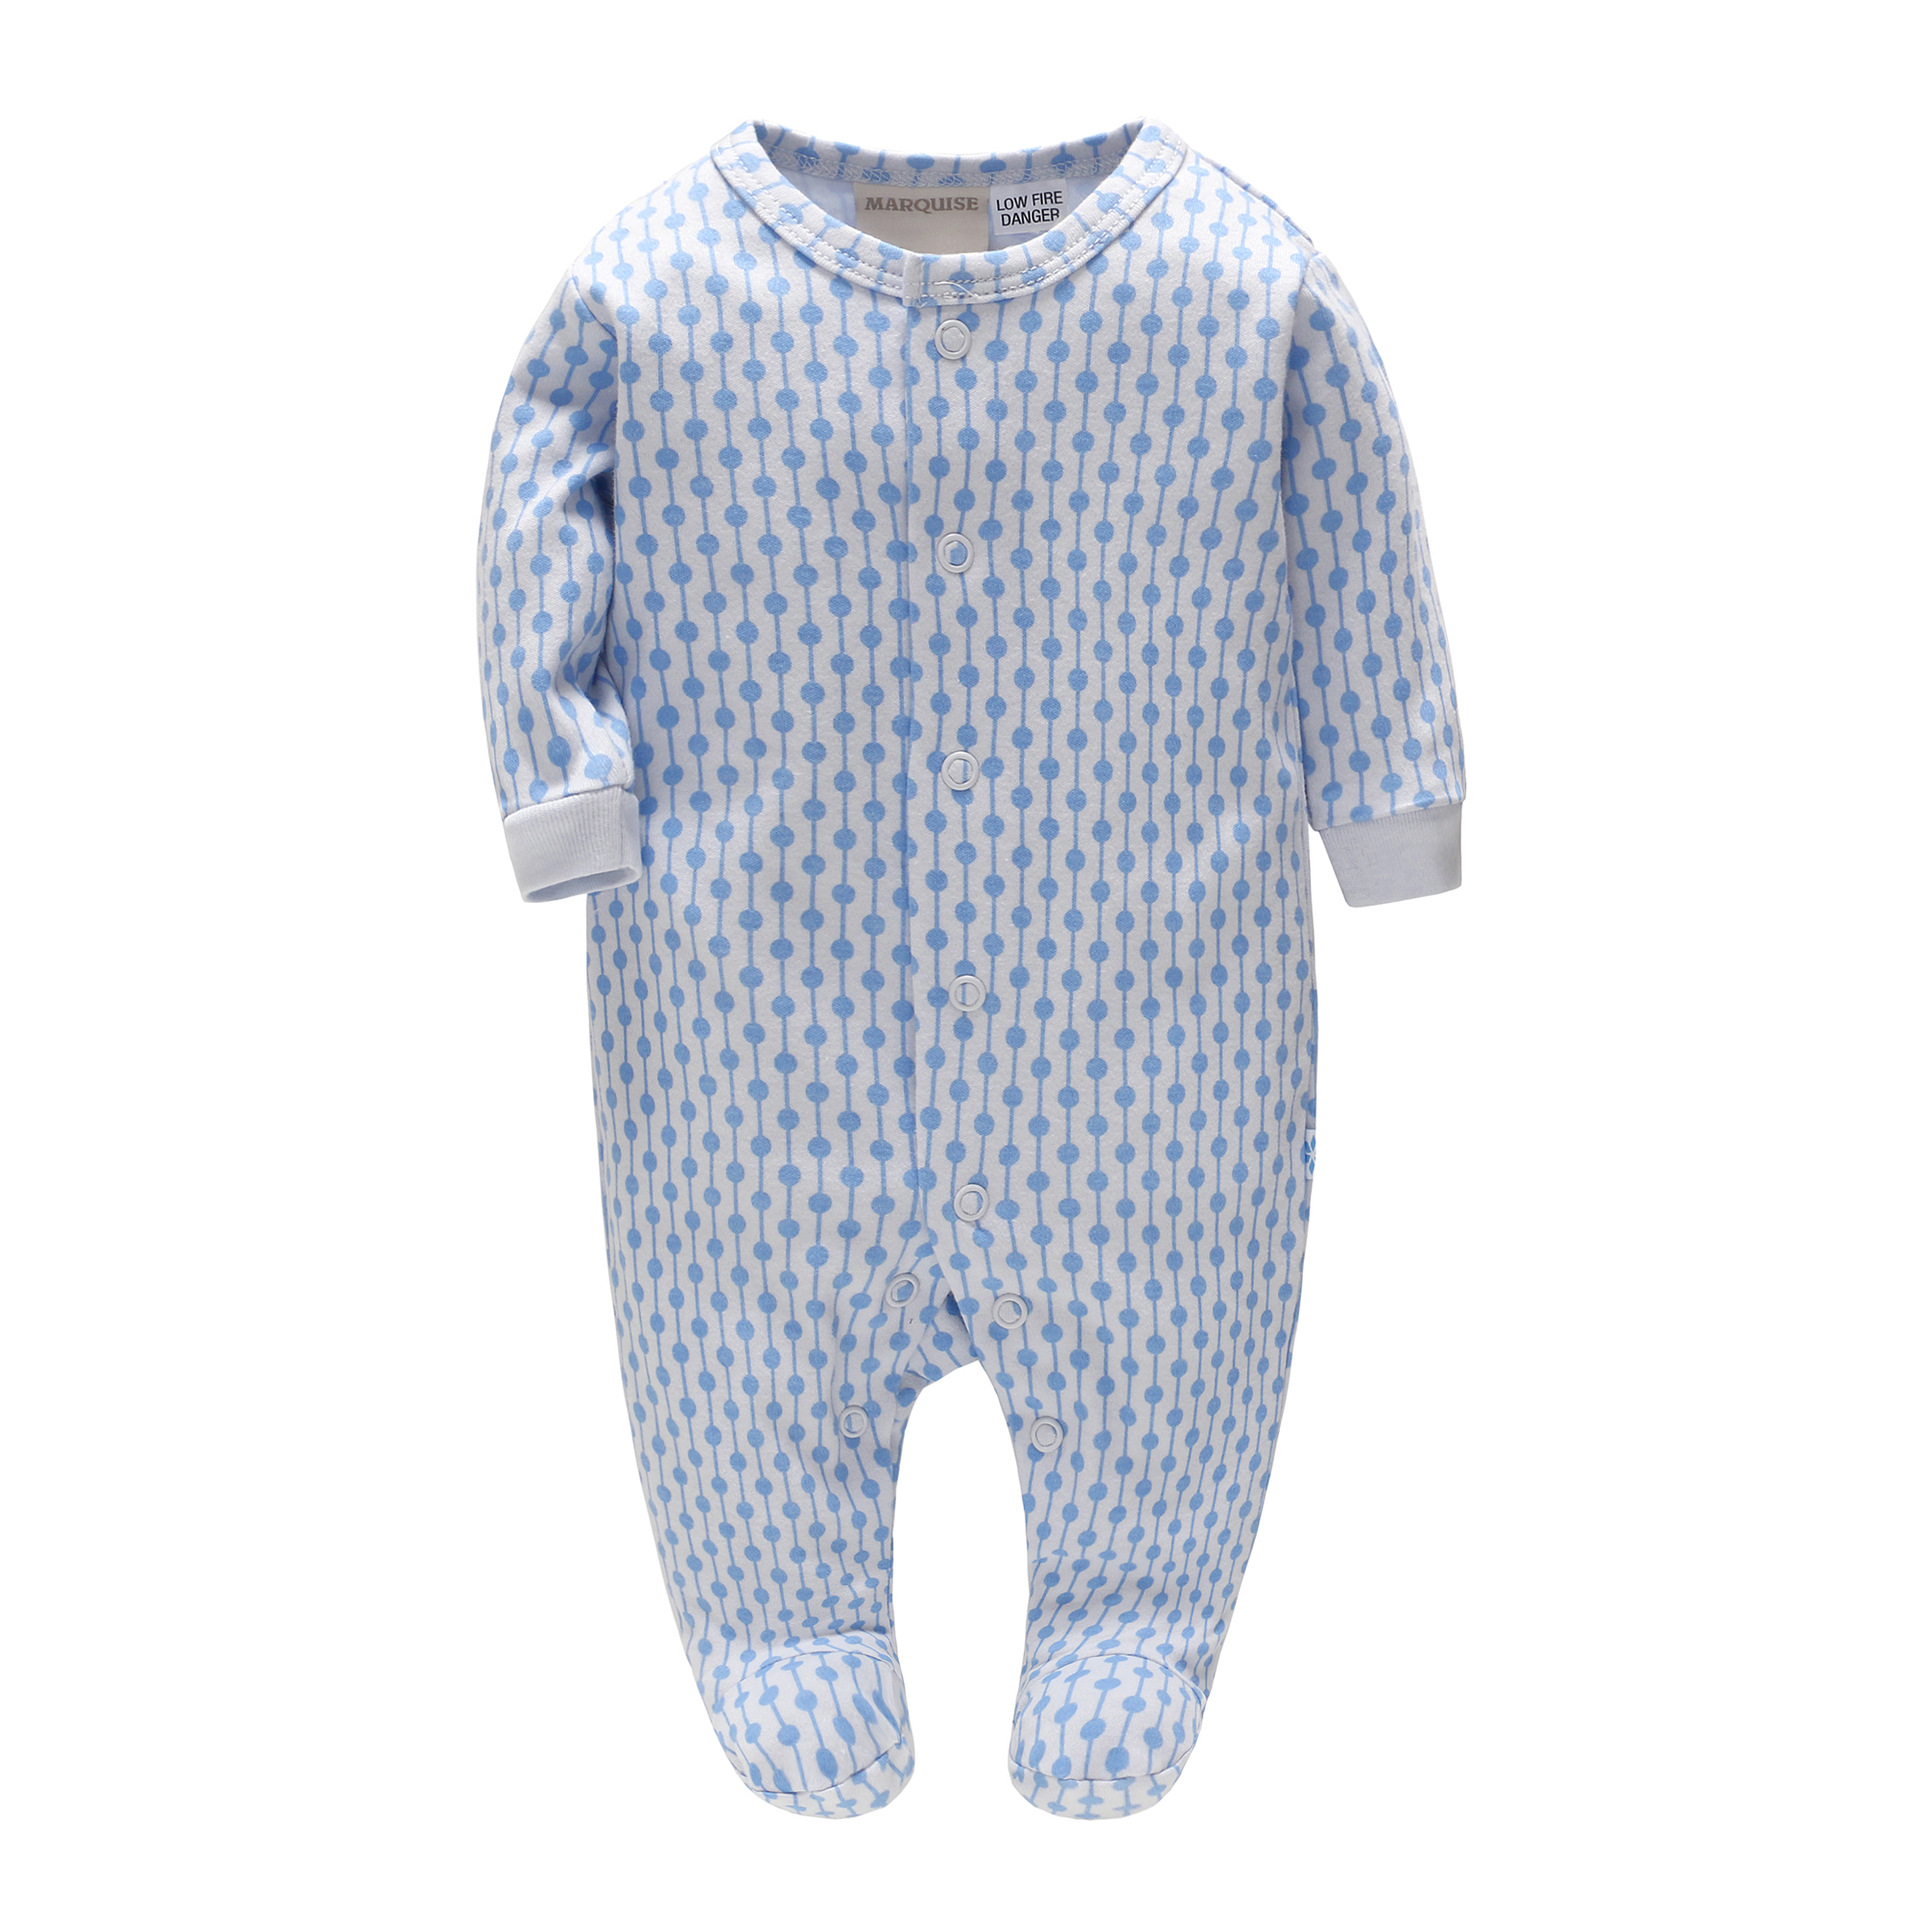 Picturesque Childhood 2018 New Infants Baby Onesie Baby Clothing Cotton Pink and Blue Long Sleeved Bag Feet Climbing Clothes